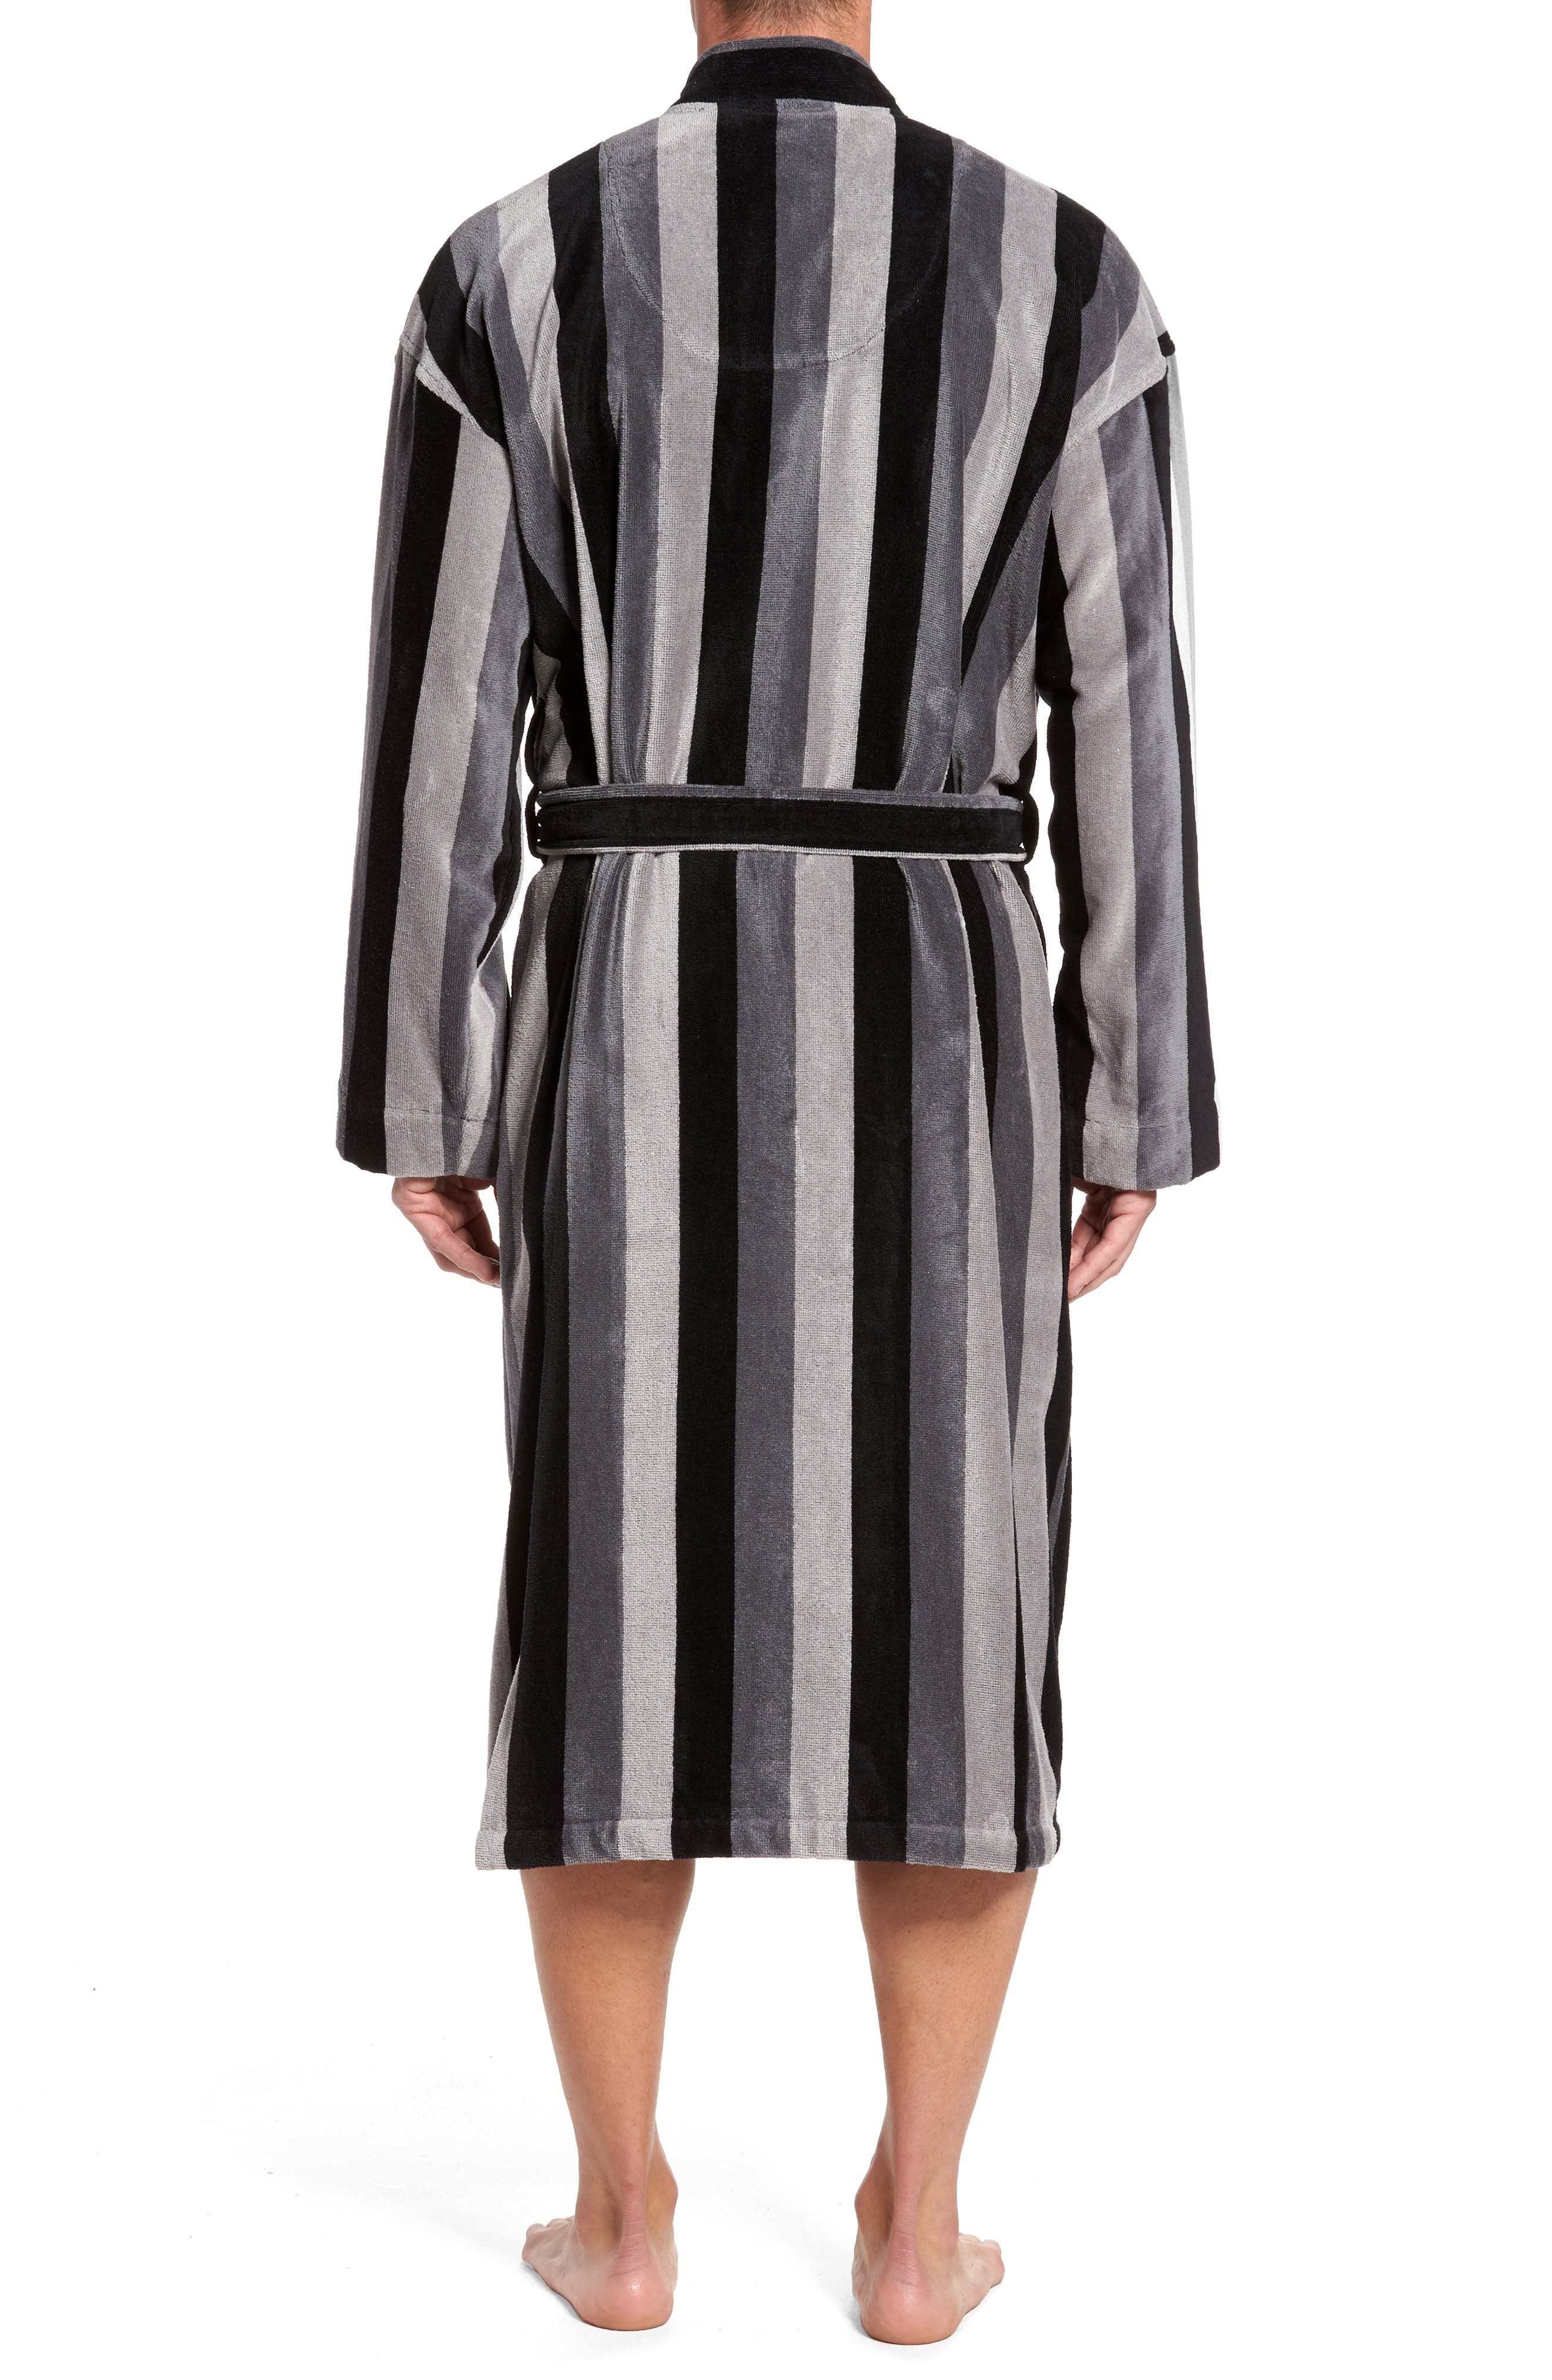 Majestic International Remarkavelour Robe Sale 100% Authentic Cheap Best Store To Get Cheap Pay With Paypal Buy Cheap Amazing Price Cheap Sale Outlet Store XwkRD